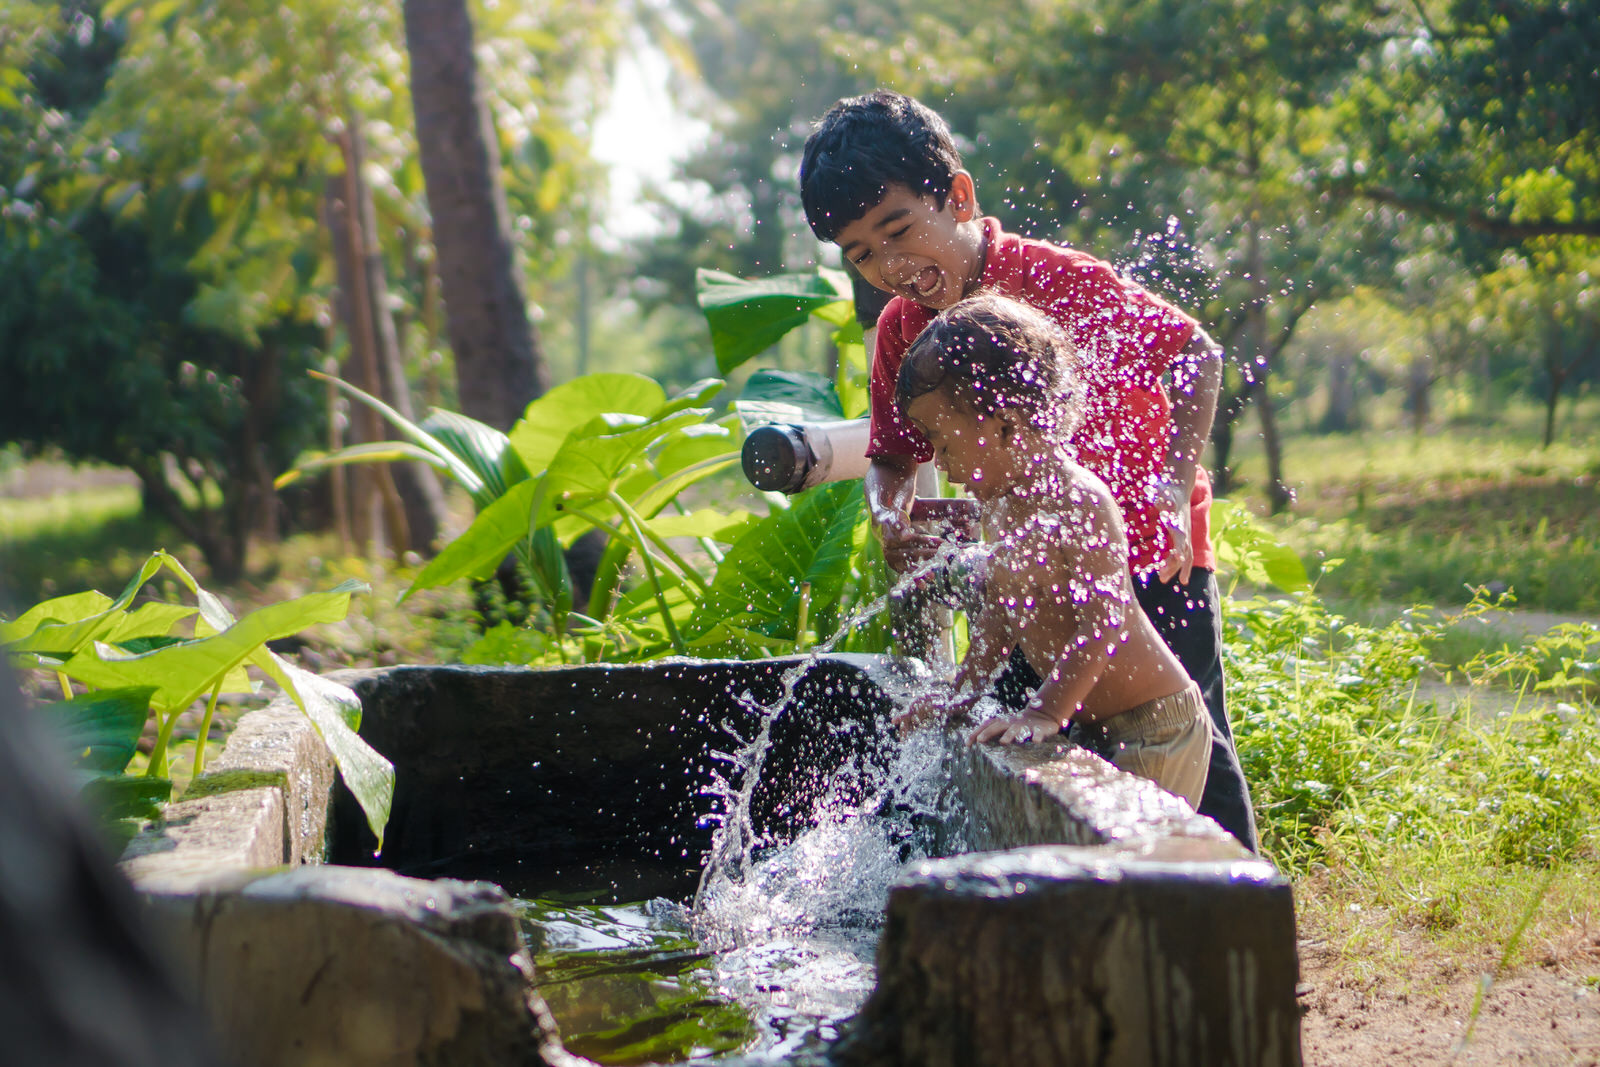 23122017-Boys-Playing-Water-Tank-331.jpg